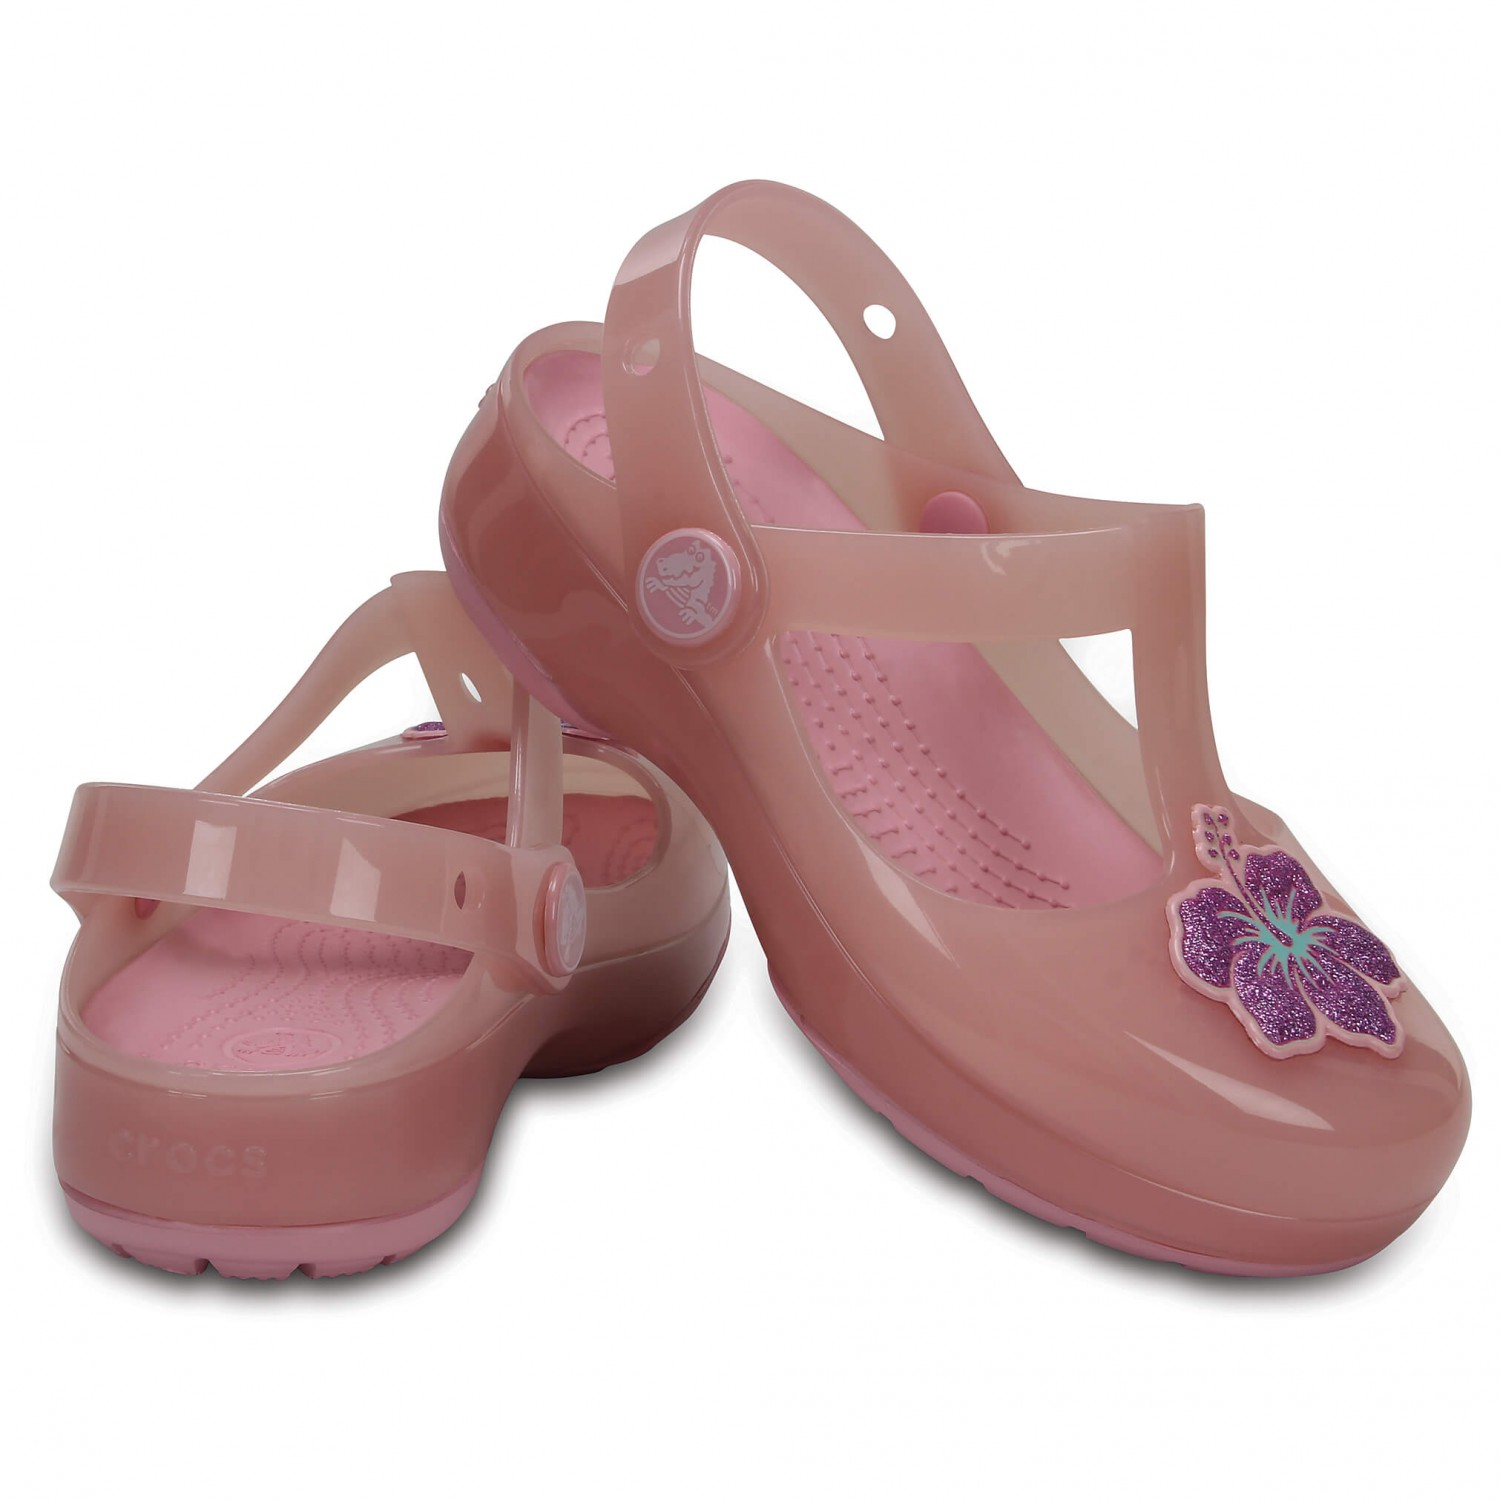 ec77ce26a732ef ... Crocs - Kid s Crocs Isabella Clog PS - Outdoor sandals ...